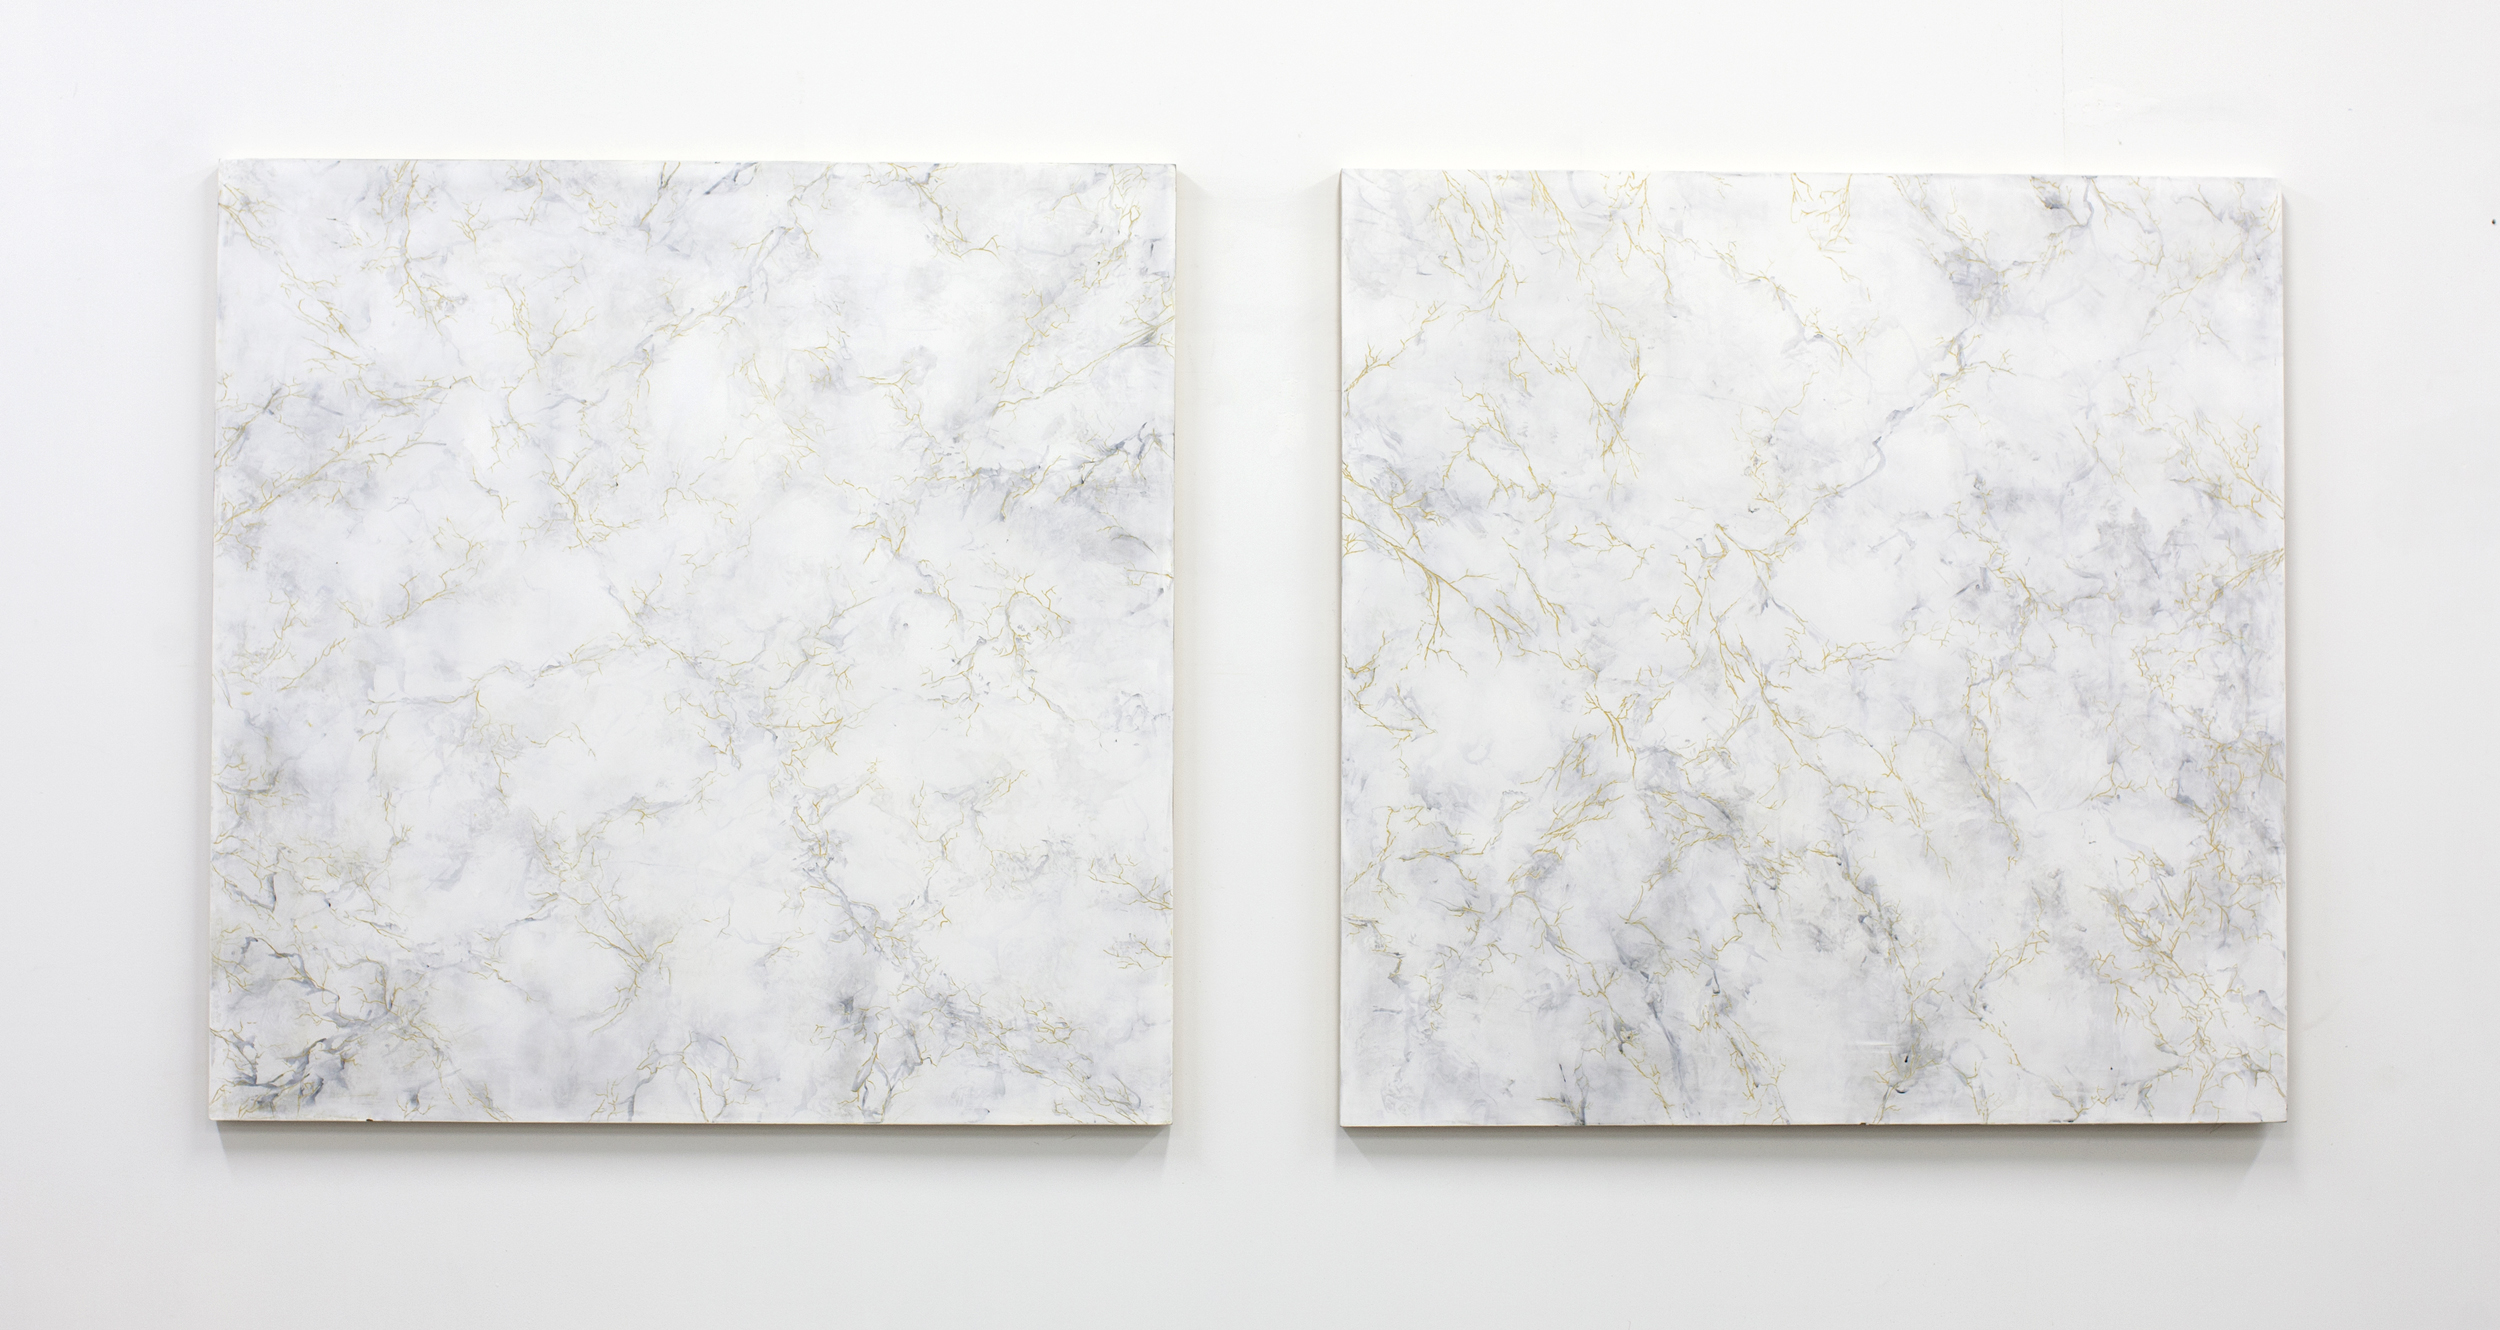 Double Vein , plaster, paint, mica, and wax on carved panel, 36 x 36 inches each, 2017